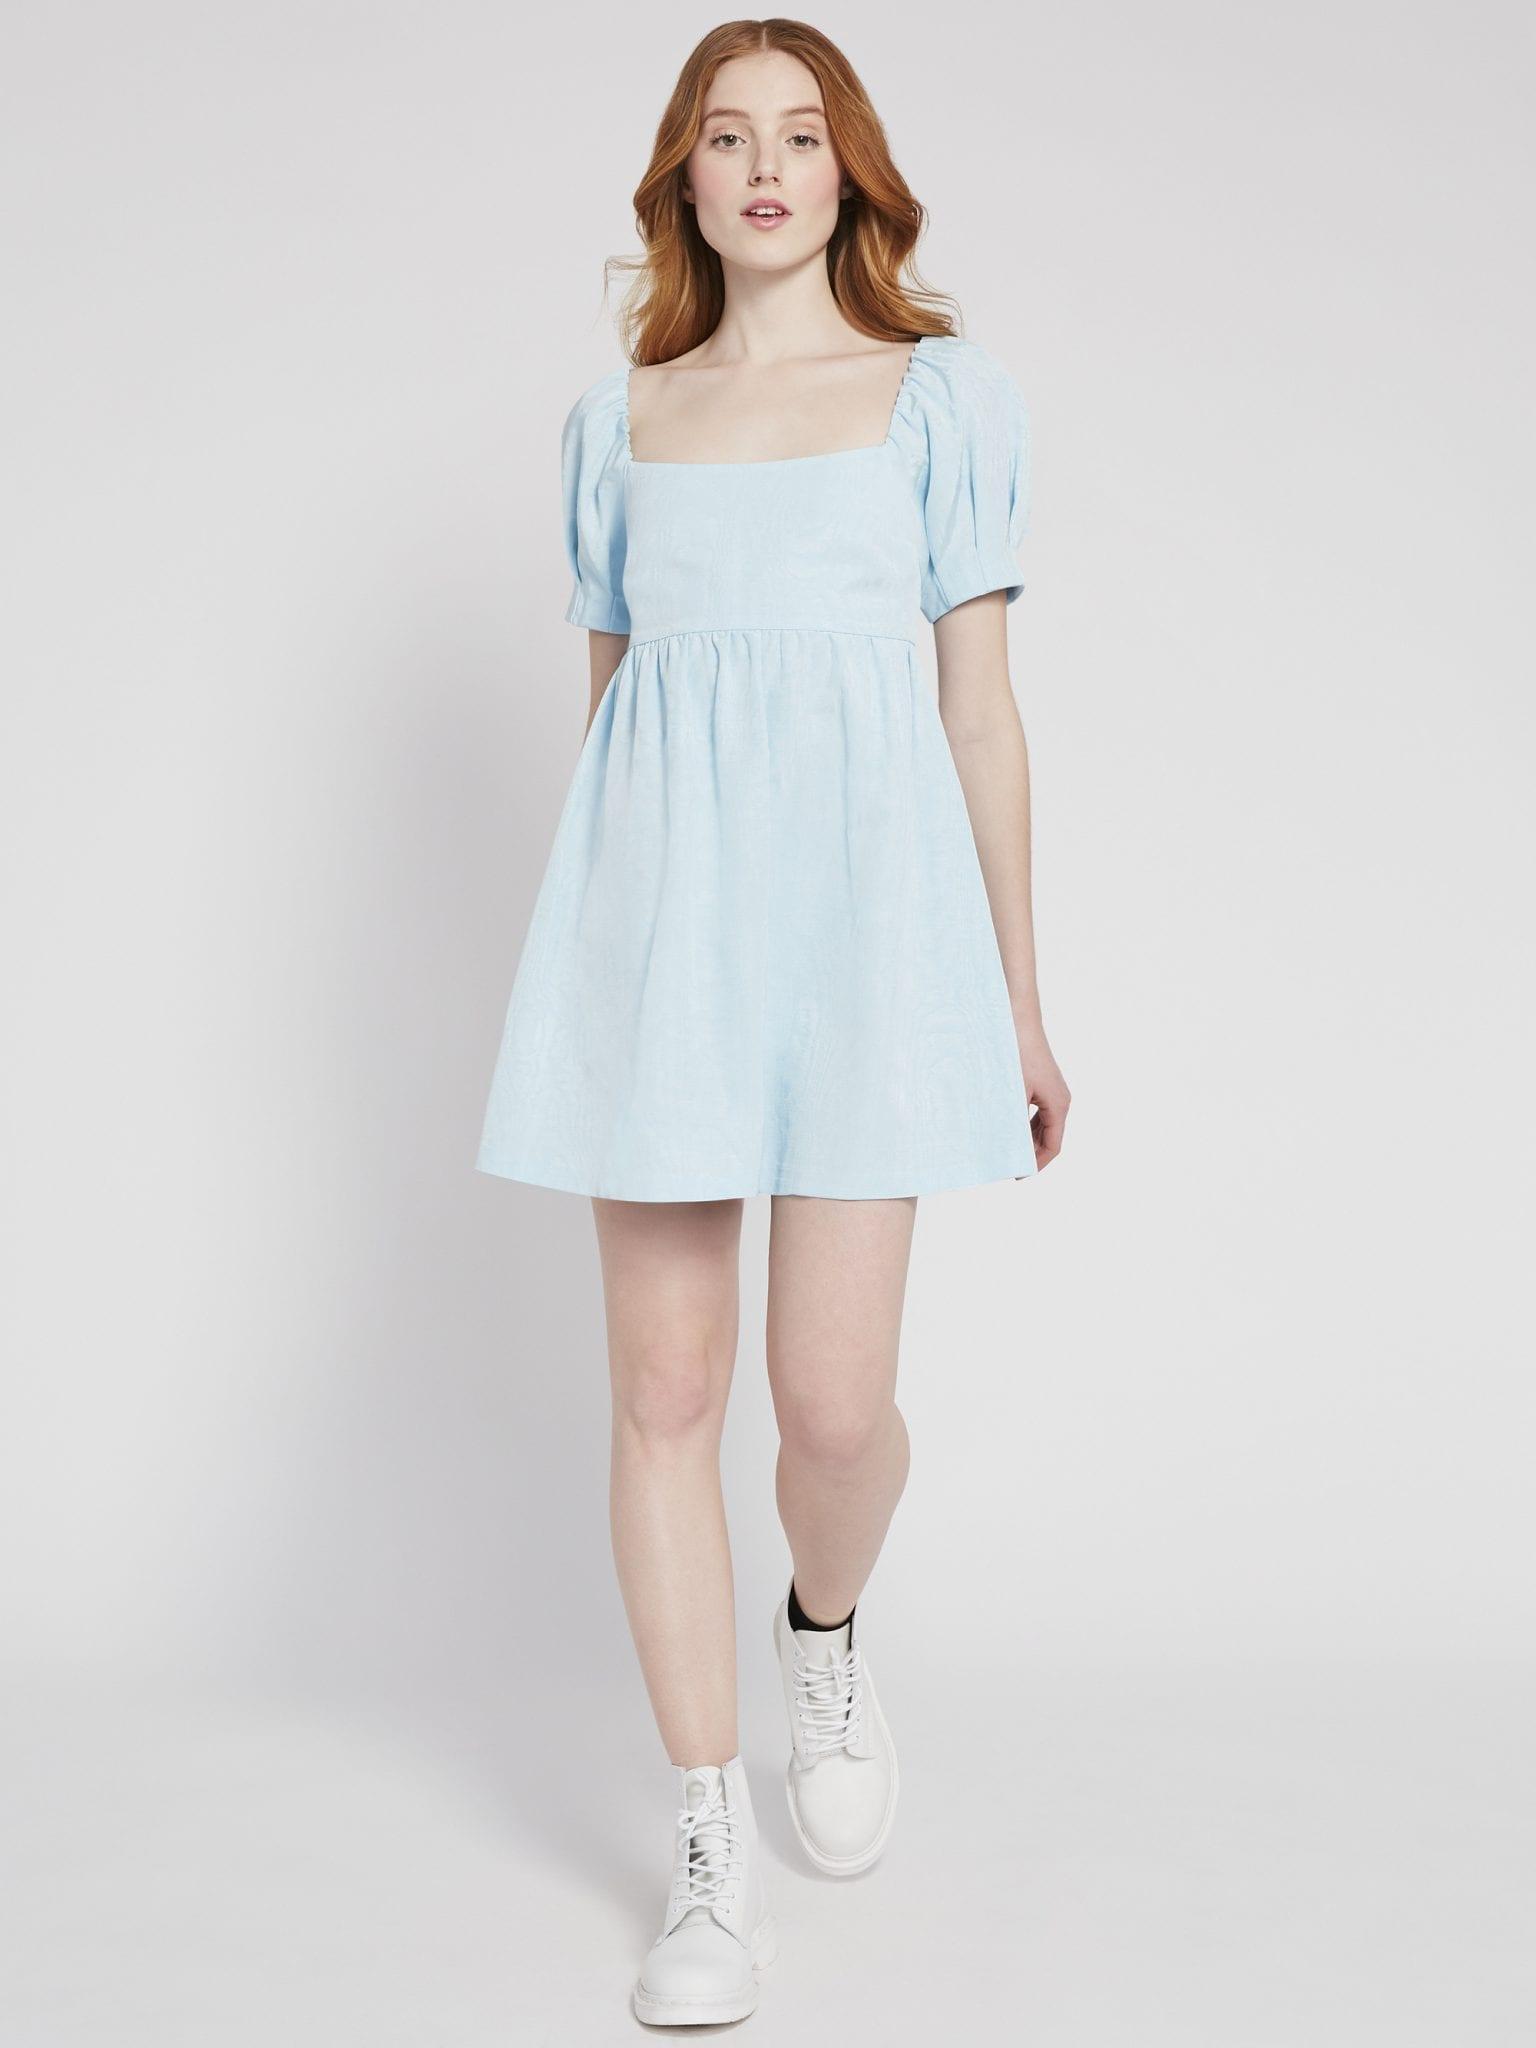 ALICE AND OLIVIA Bauery Puff Sleeve Mini Dress